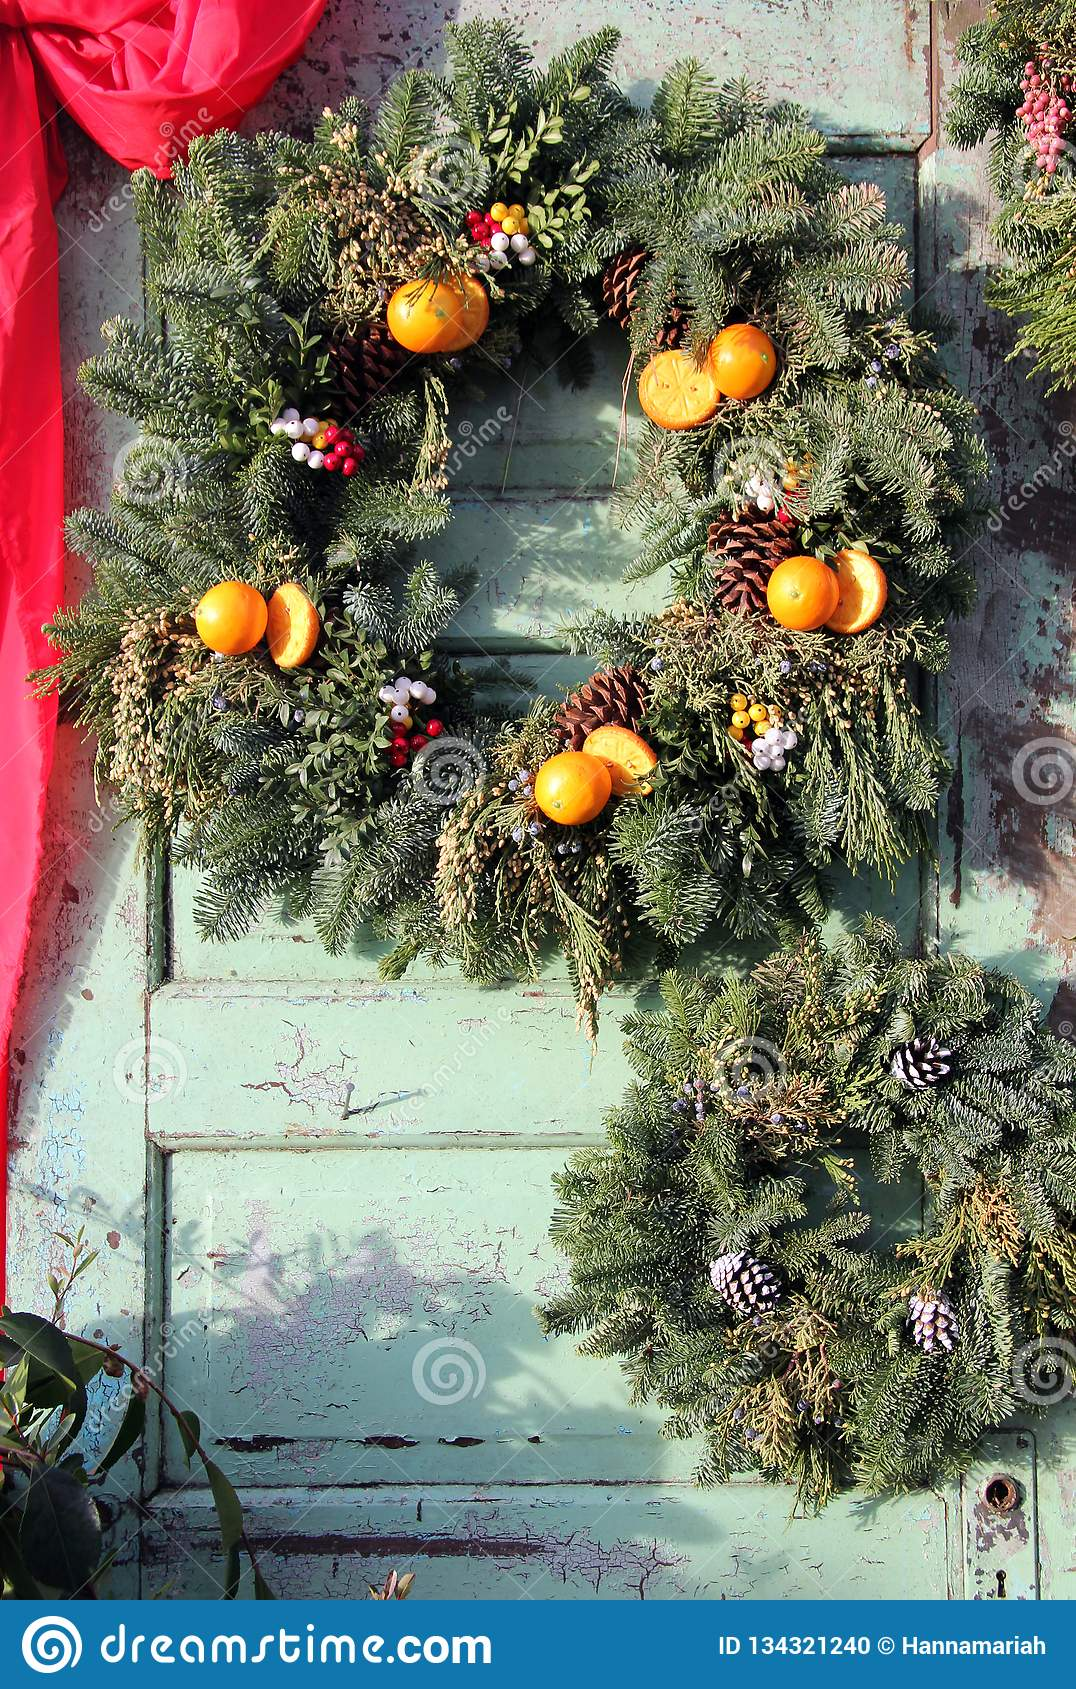 Christmas wreath with pinecones and oranges